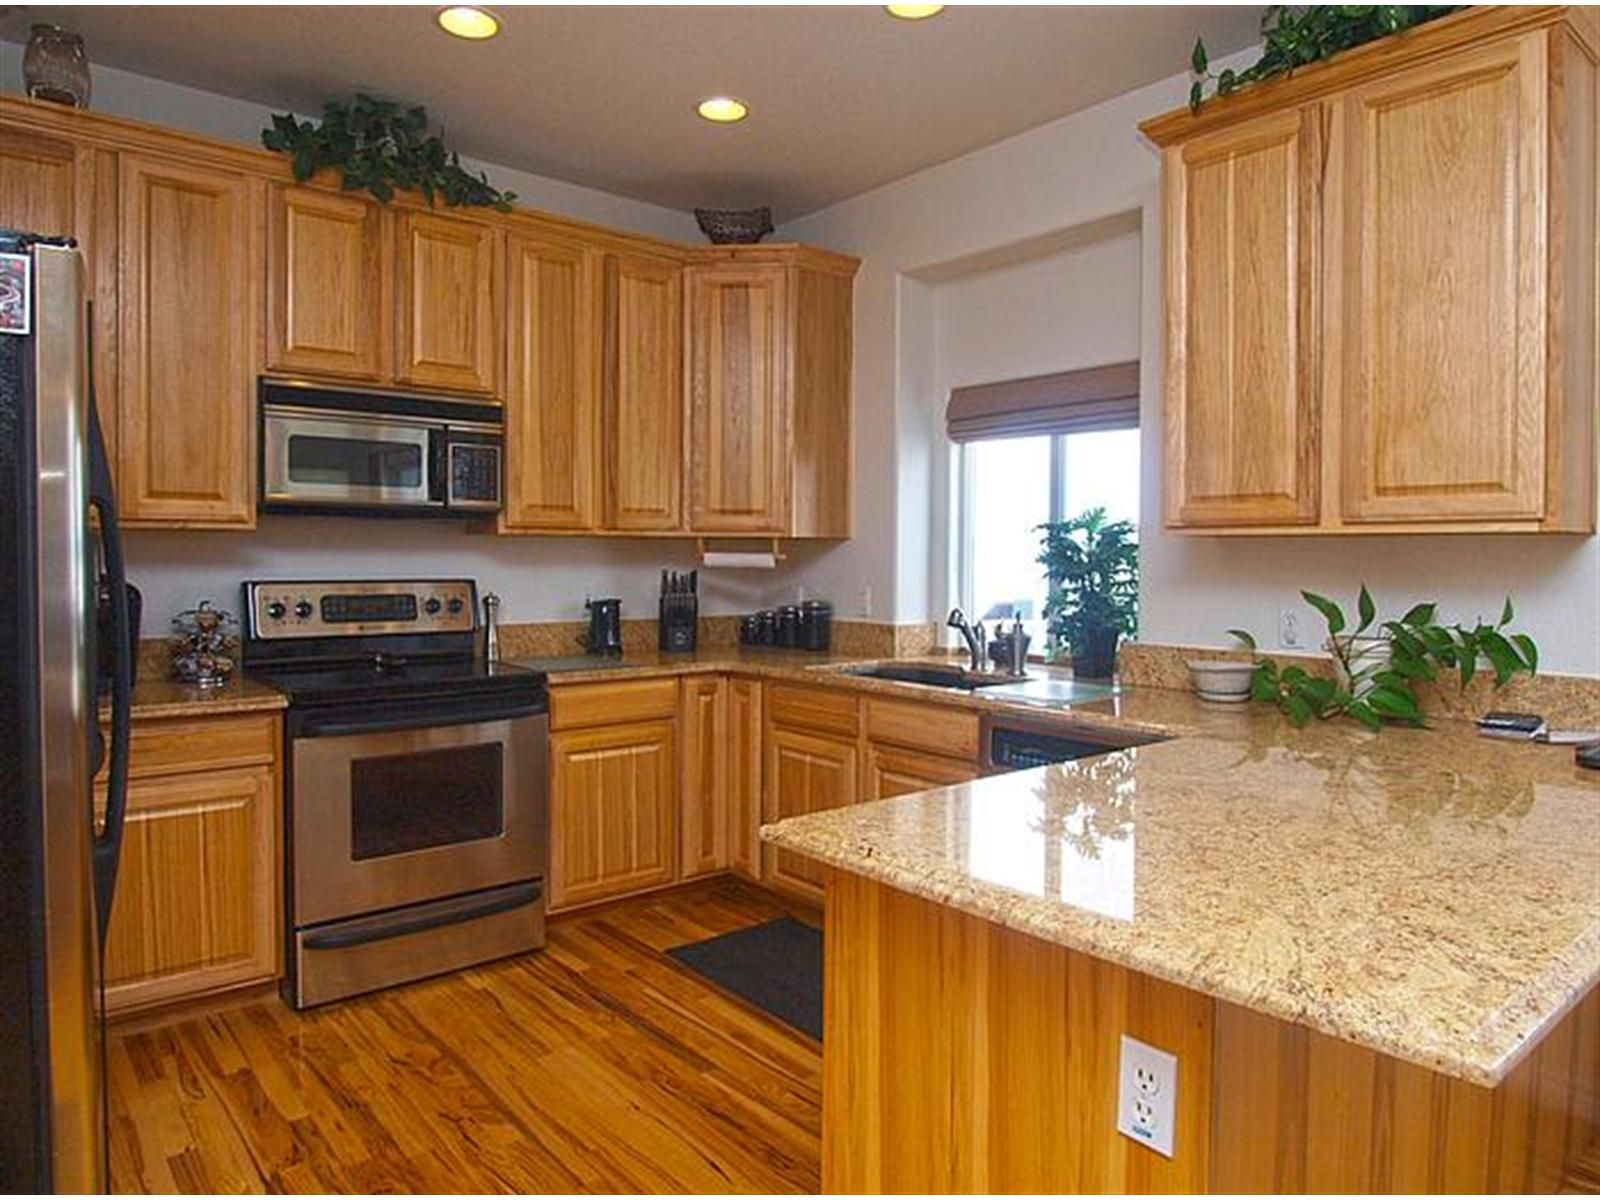 Kitchen Floors And Cabinets Open Kitchen Plan With Hickory Cabinets And Hardwood Floors